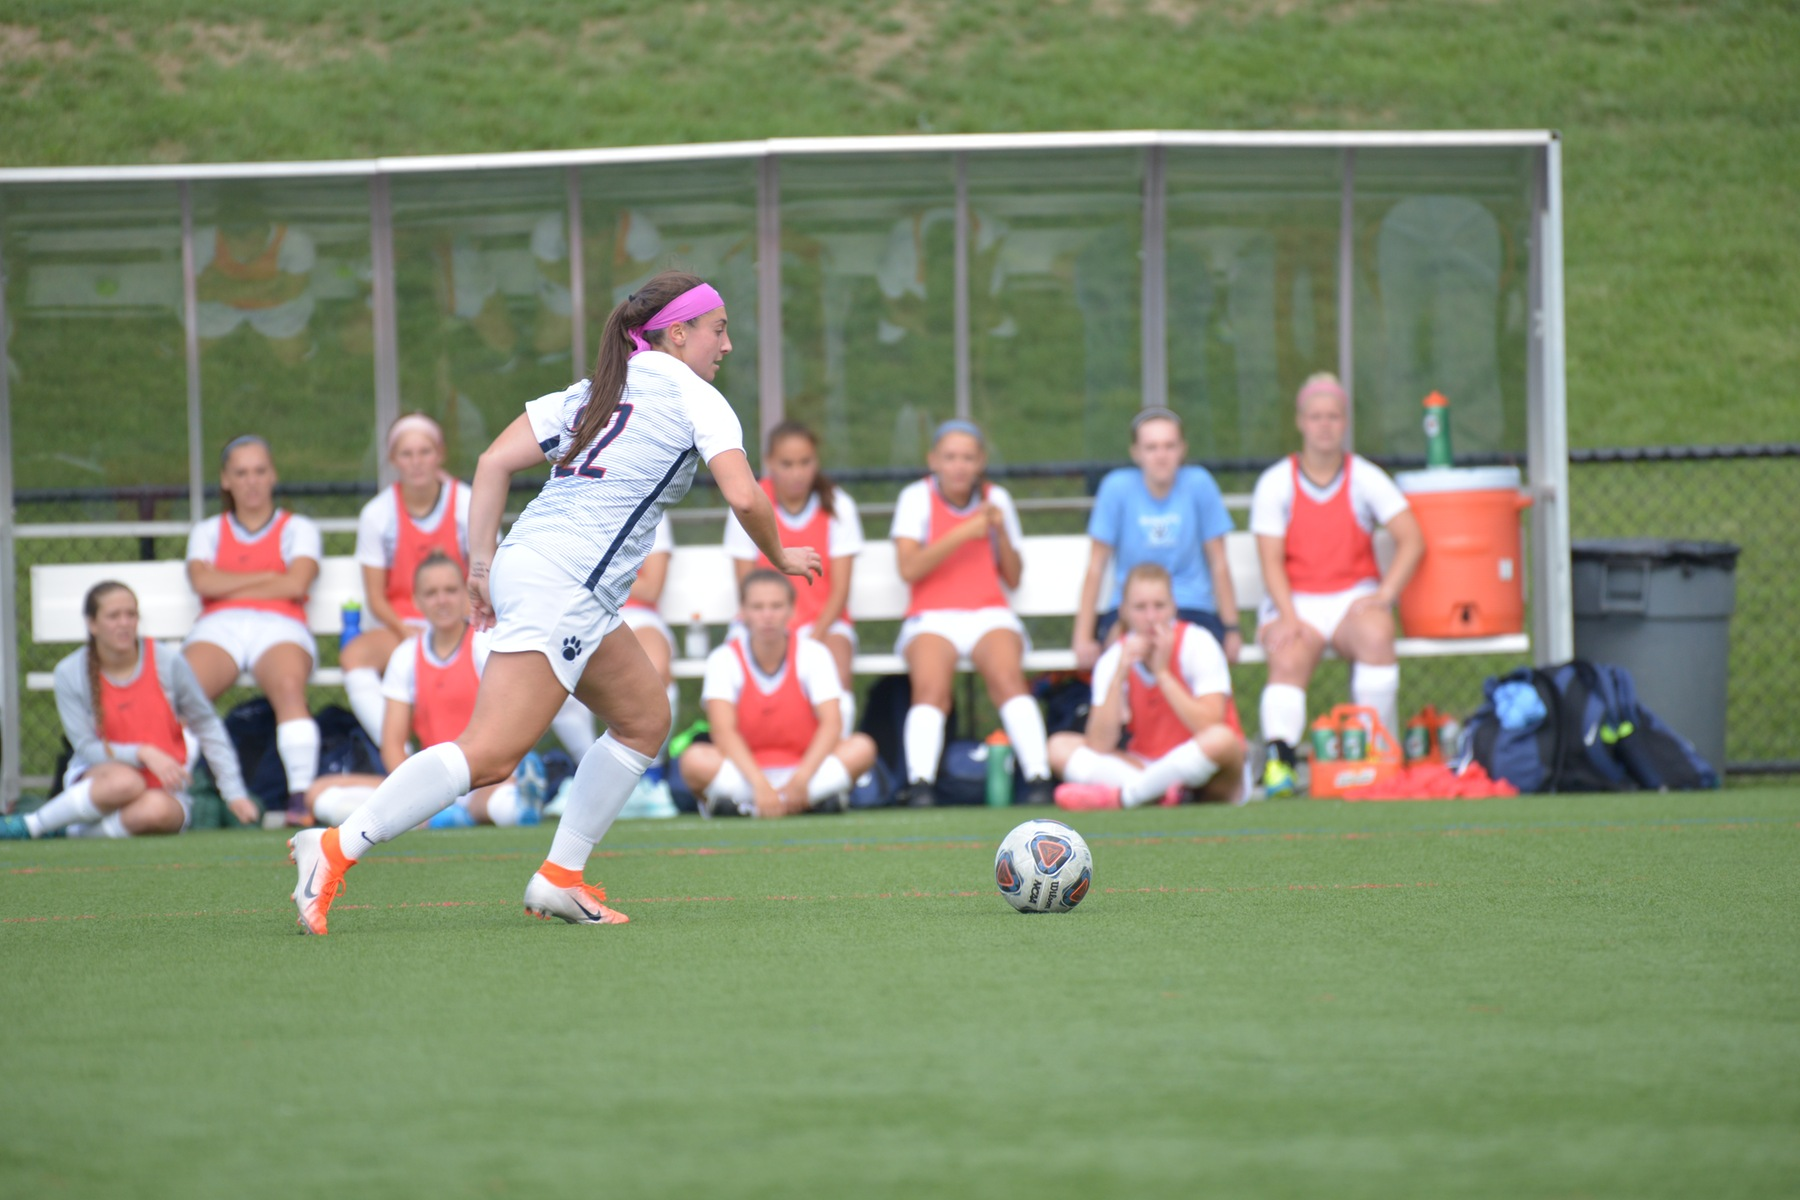 Behrend Falls to Case Western Reserve on Sunday